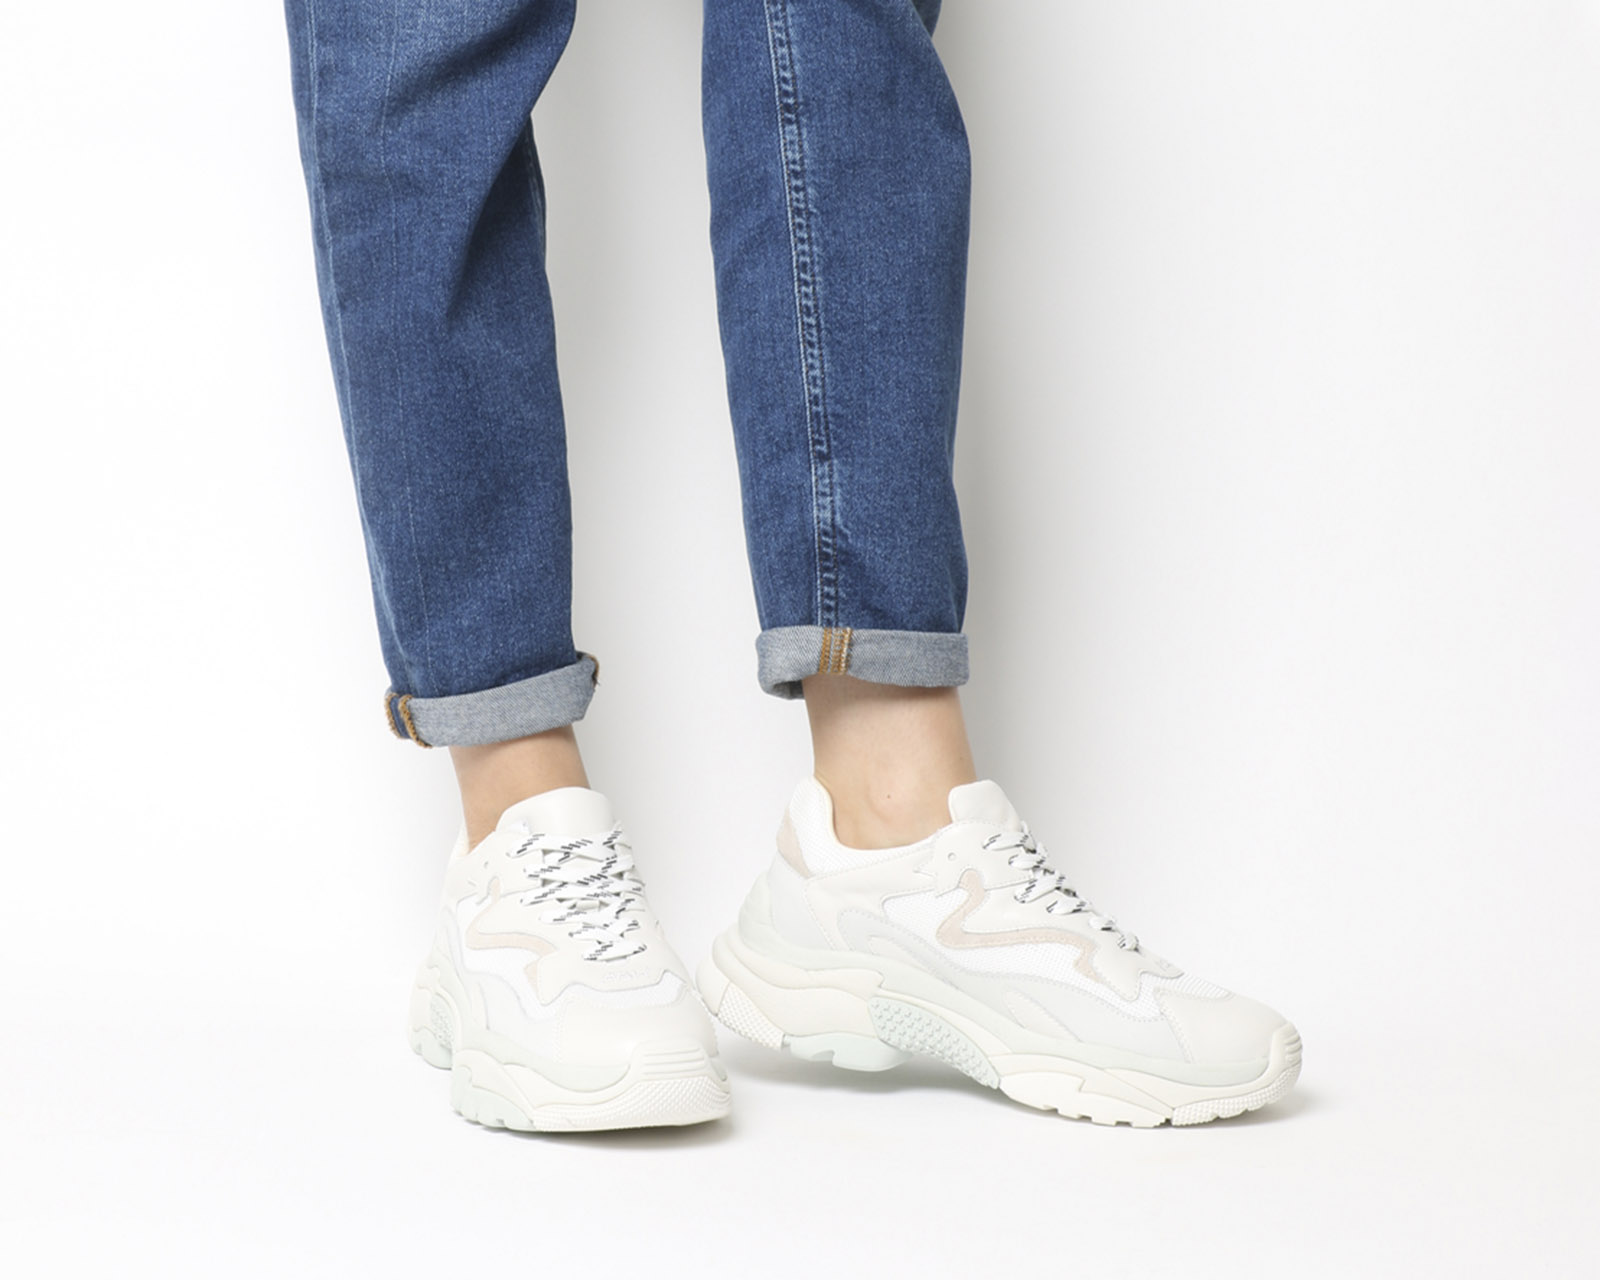 7200c85a9d83b Sentinel Womens Ash Addict Sneakers White Off White Trainers Shoes